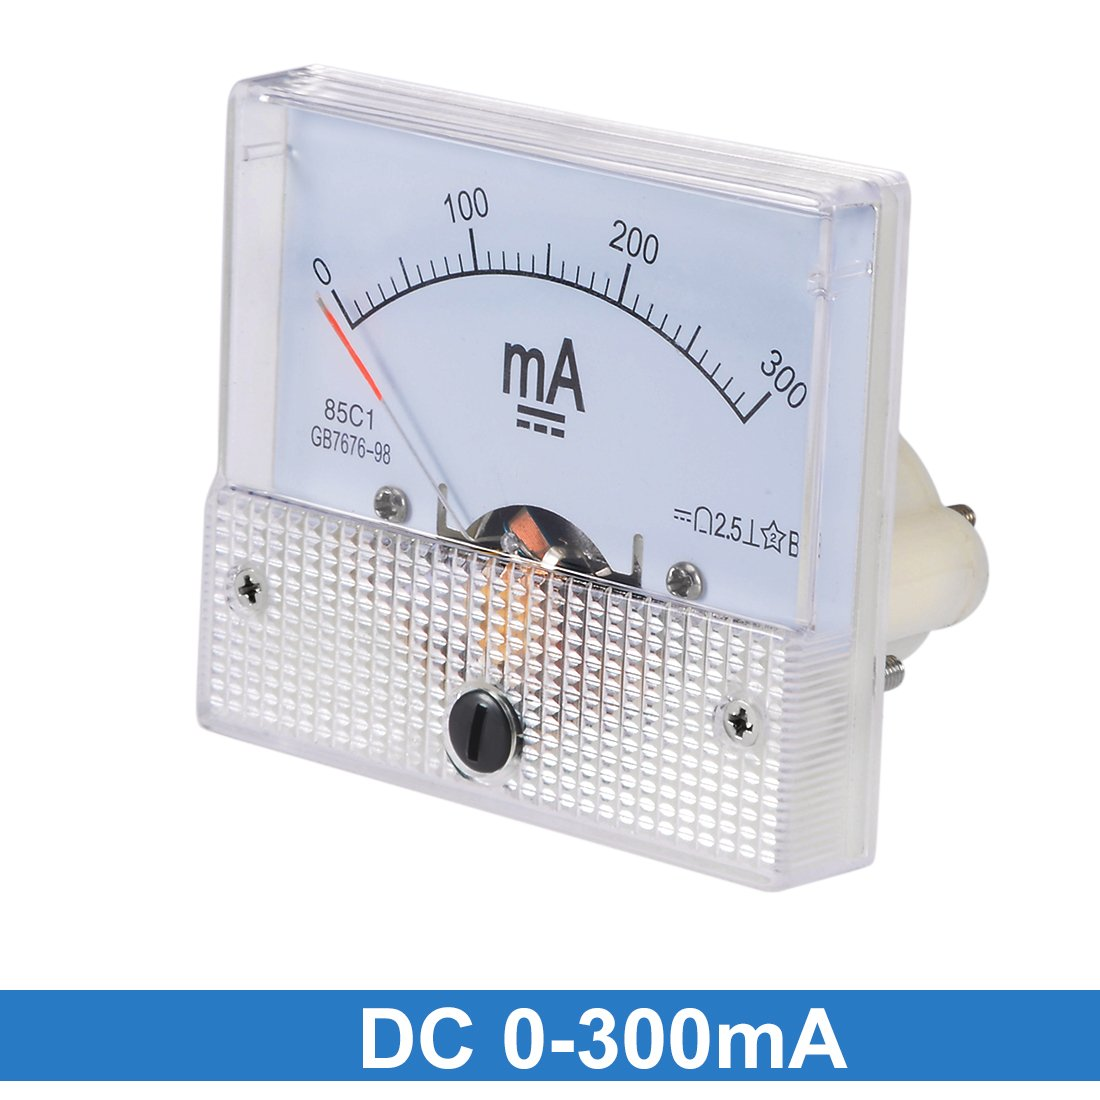 uxcell 85C1 Analog Current Panel Meter DC 20A Ammeter for Circuit Testing Ampere Tester Gauge 1 PCS